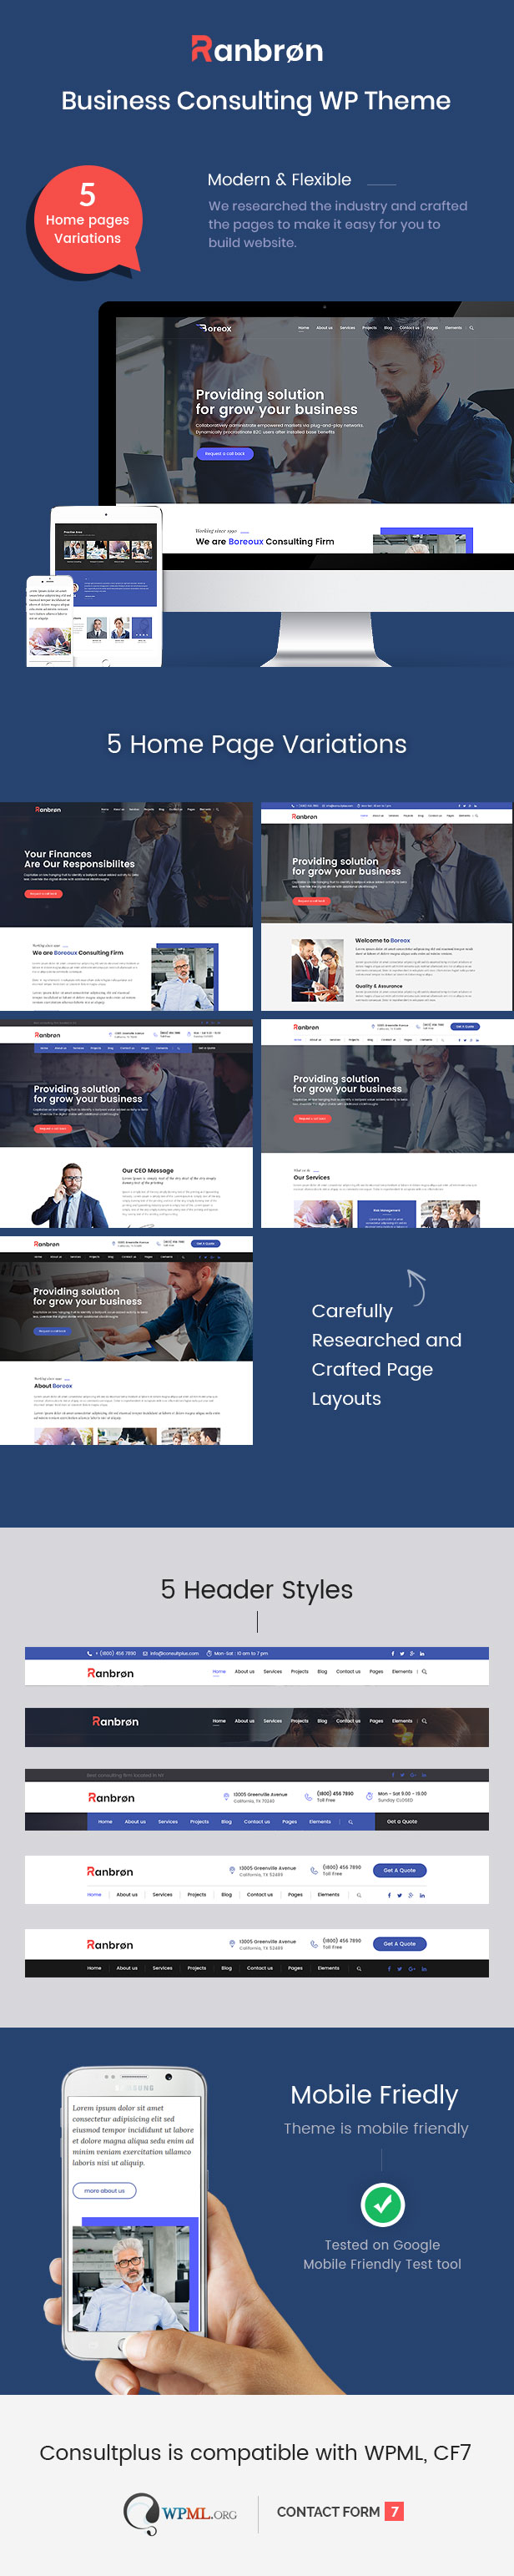 Ranbron - Business and Consulting WordPress Theme - 2